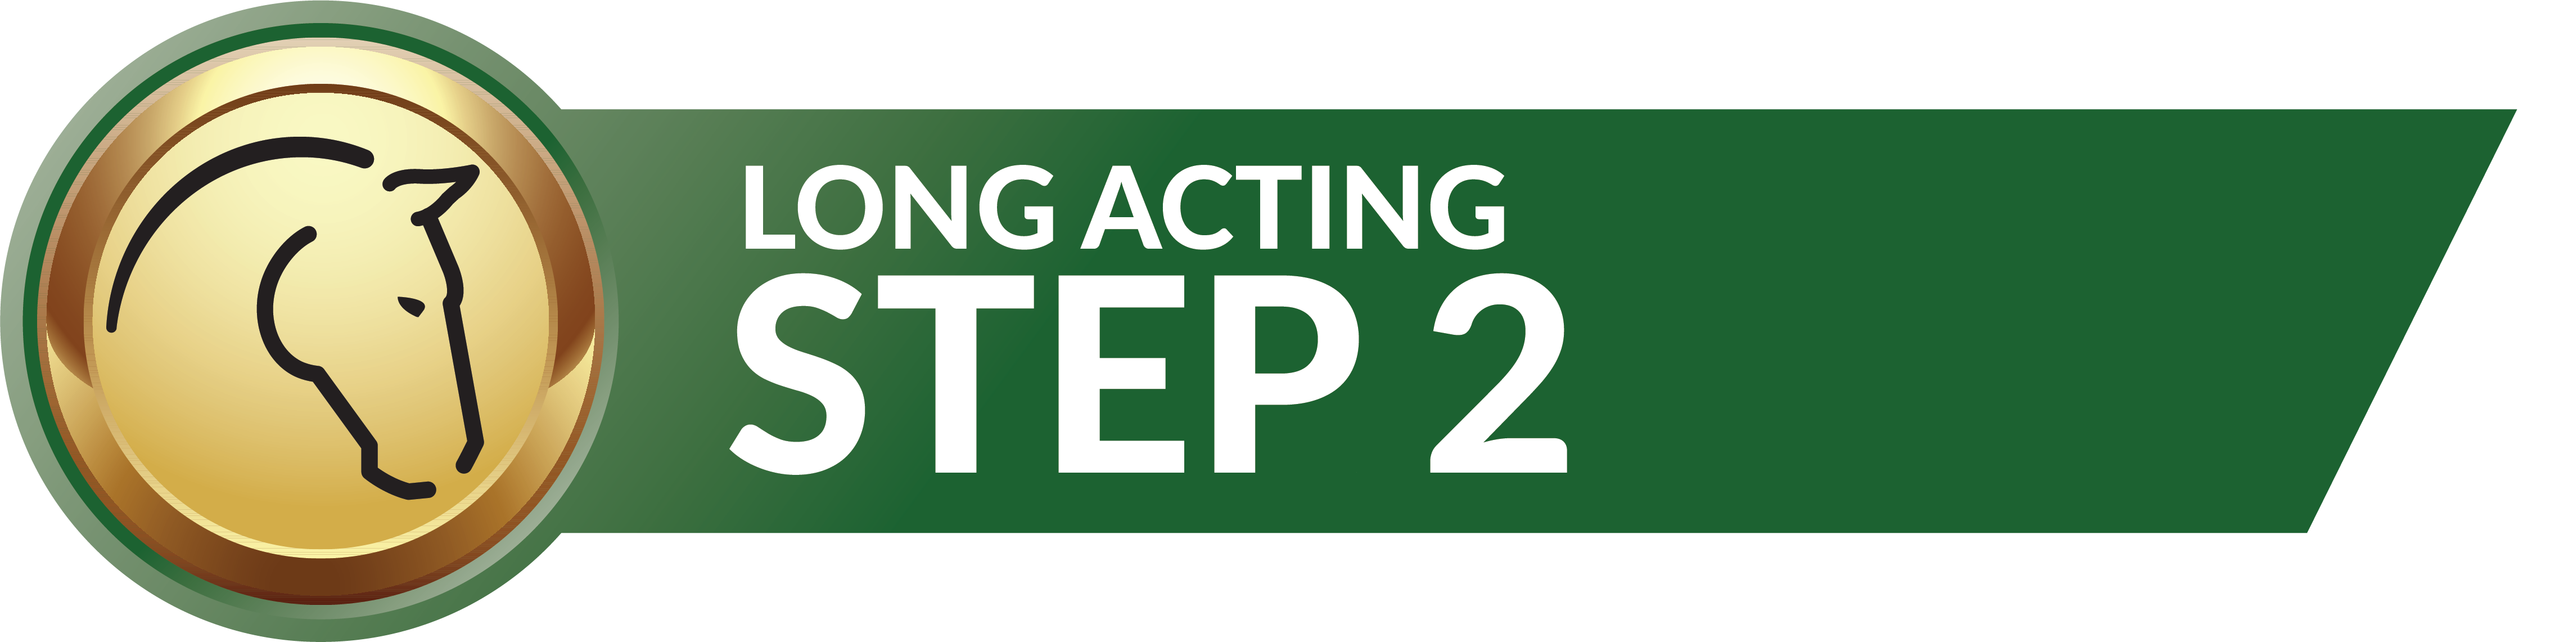 Step 2 Calming System